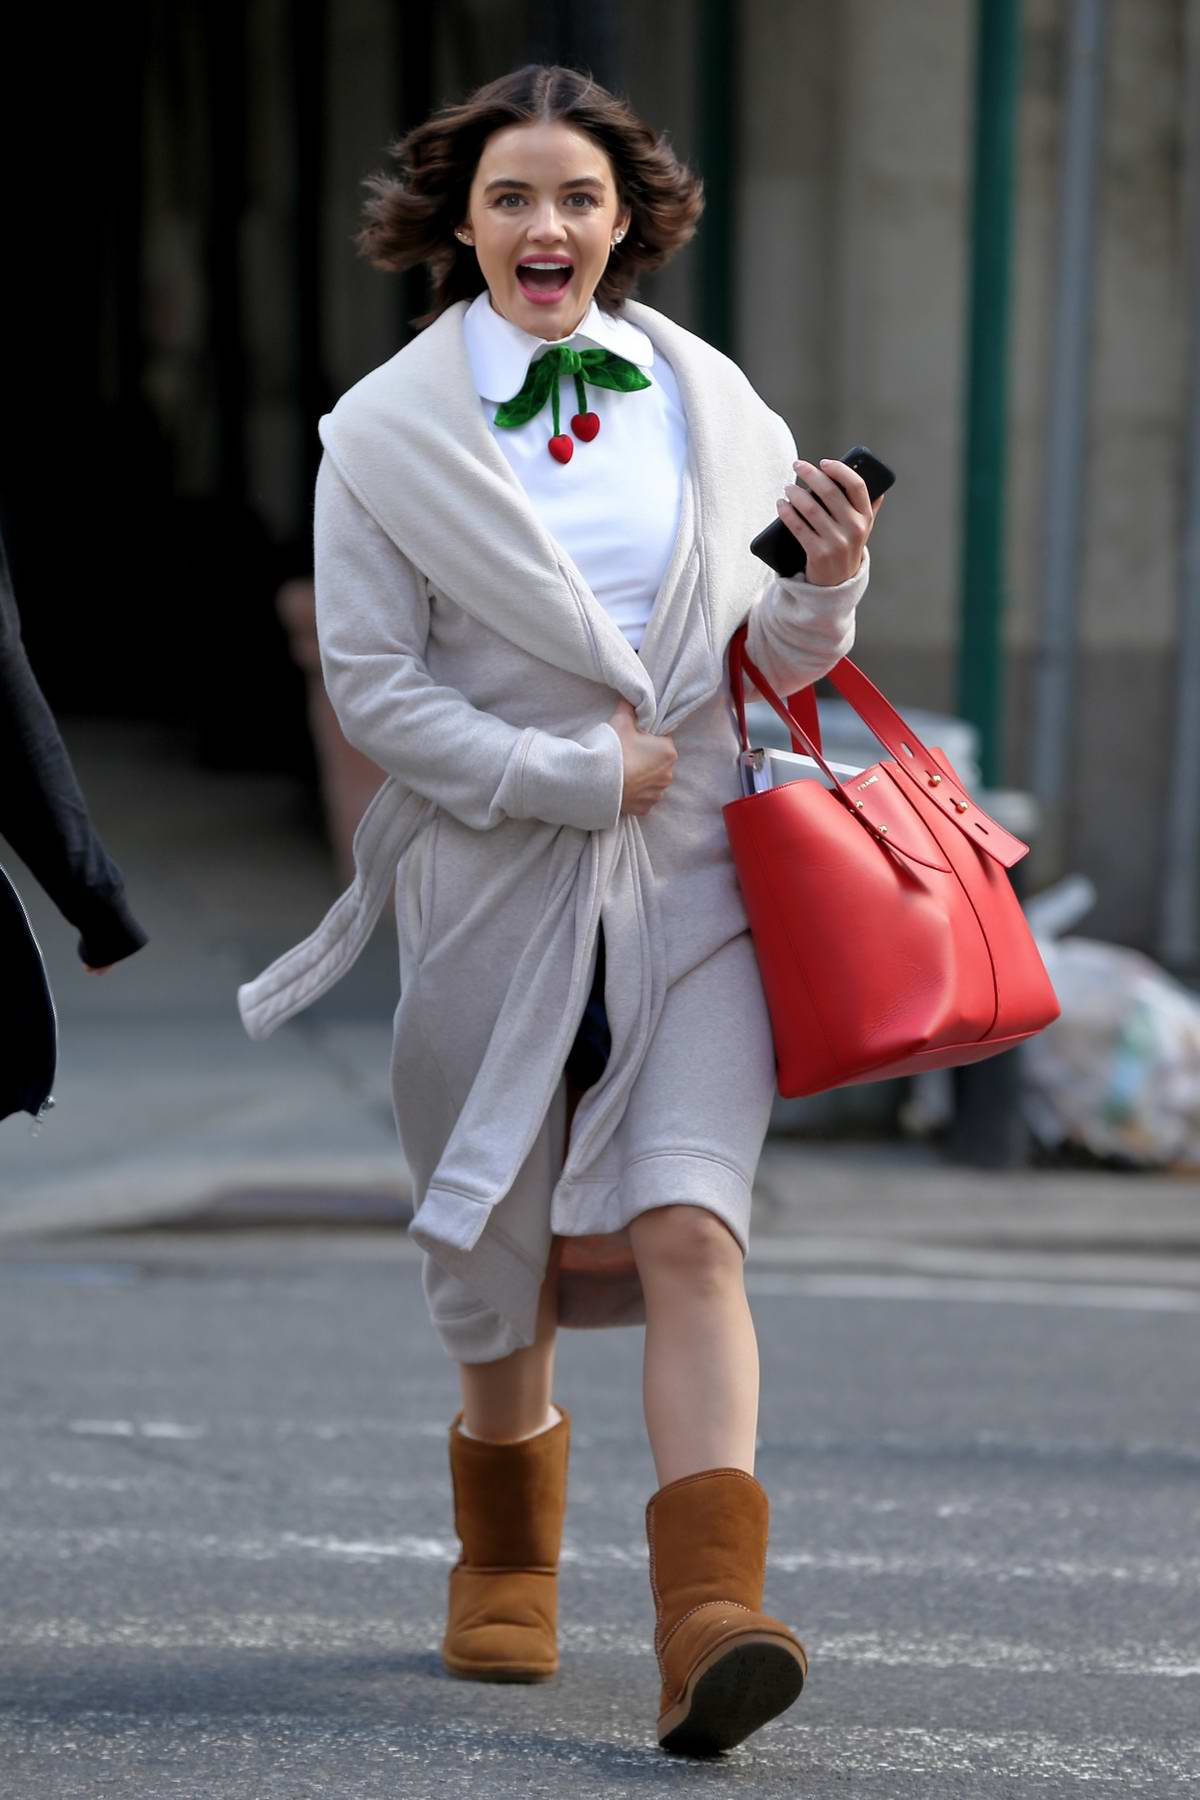 Lucy Hale looks cute in a white top and blue skirt while filming Riverdale spinoff 'Katy Kenee' in New York City